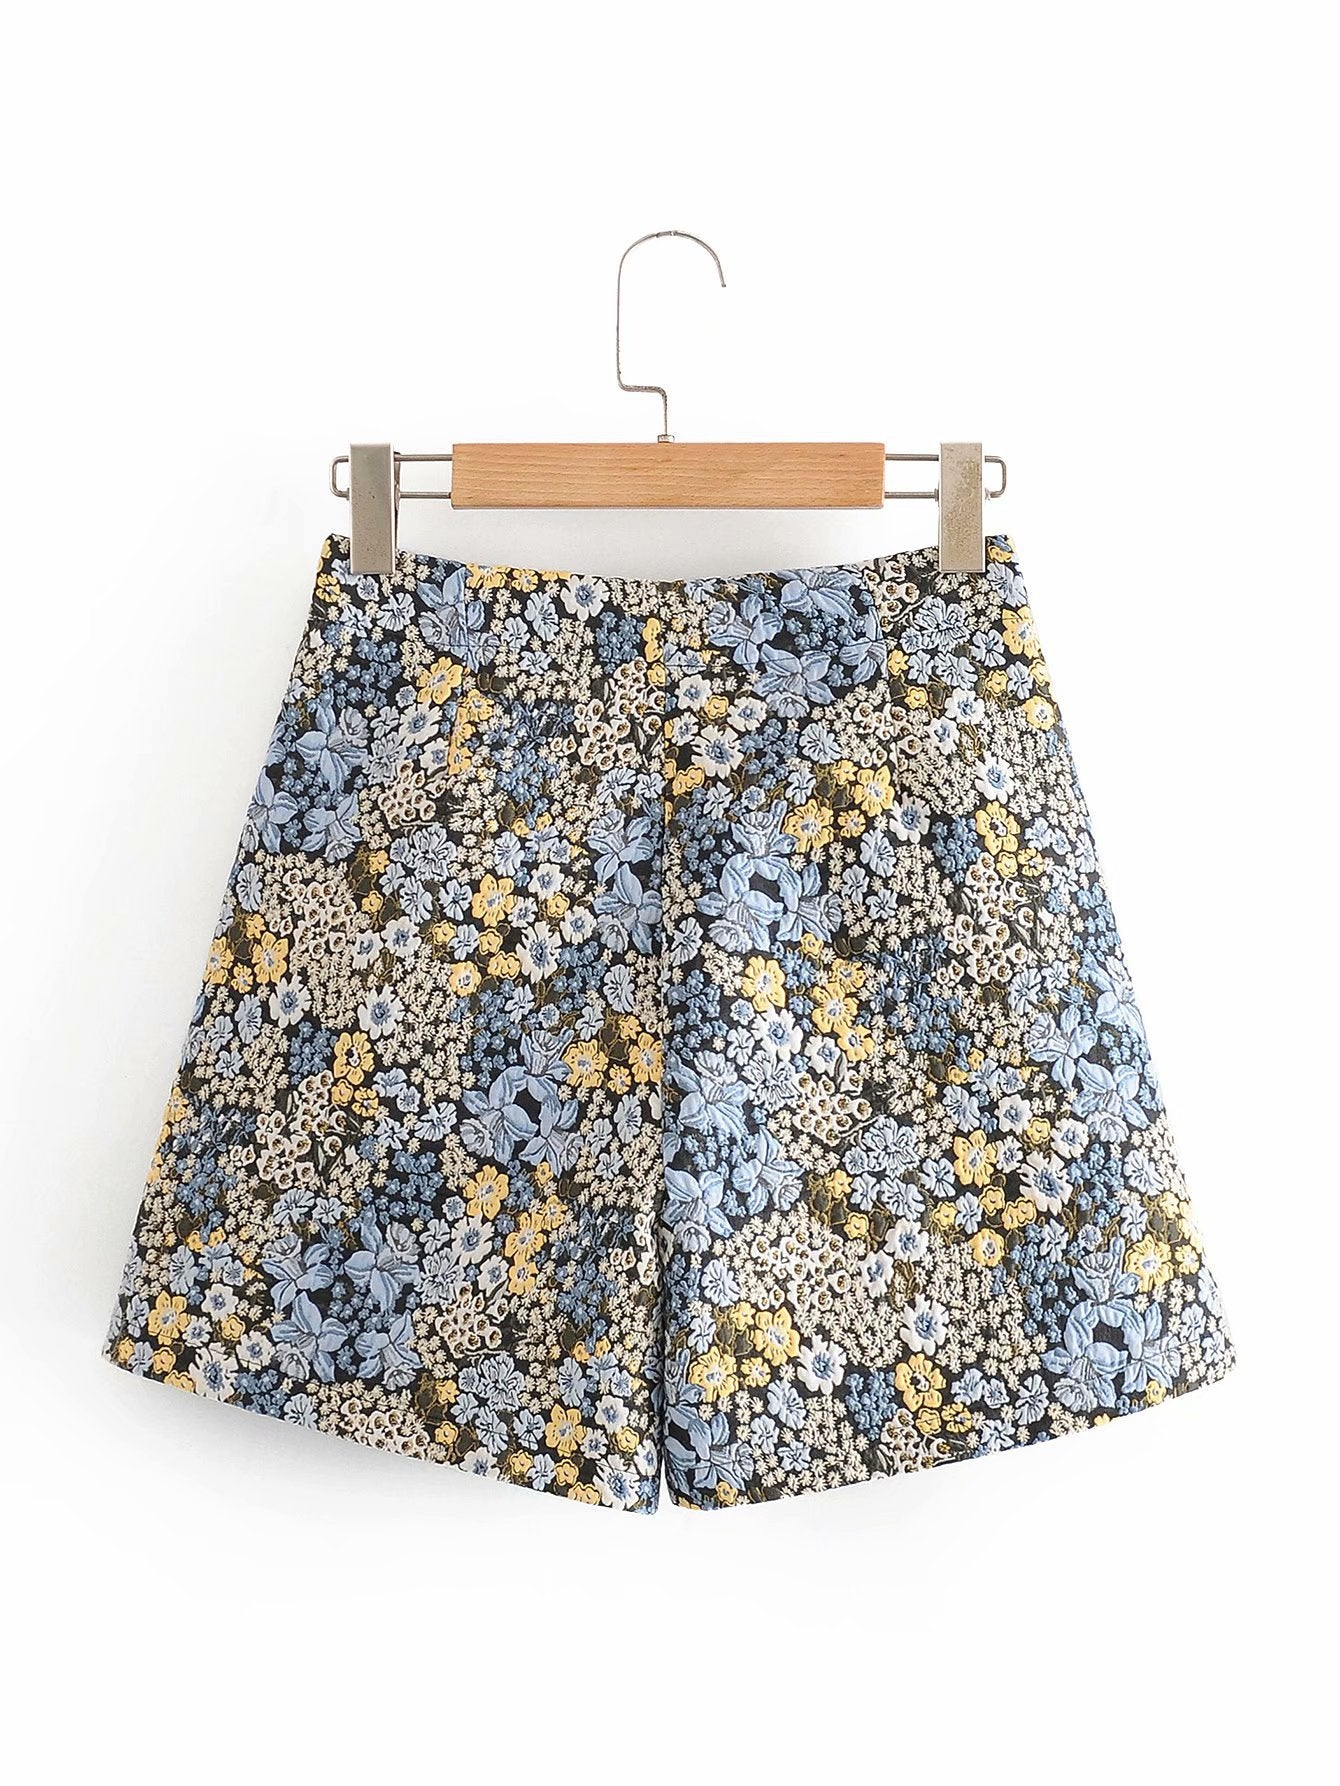 El Summer Floral Embroidered Shorts